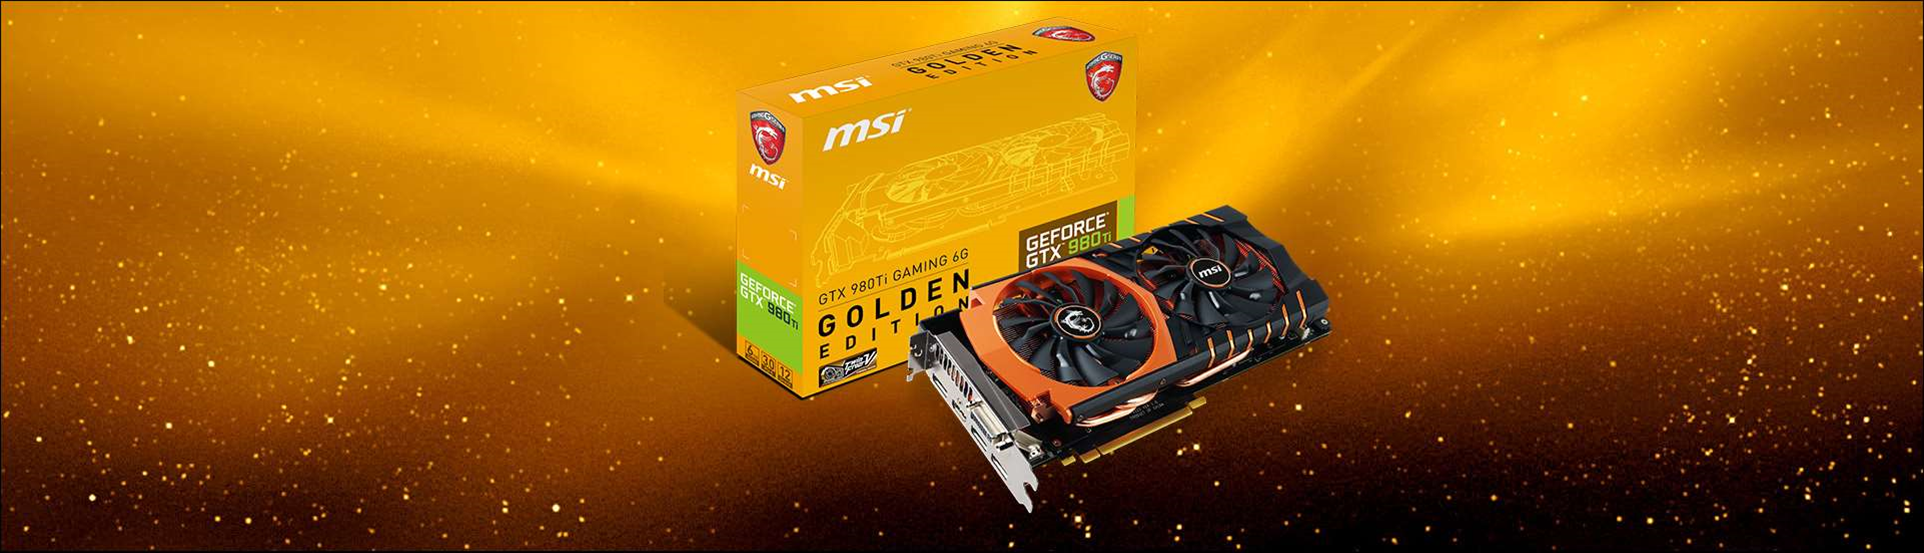 New MSI GTX 980Ti Gaming 6G Golden Edition is super-cool